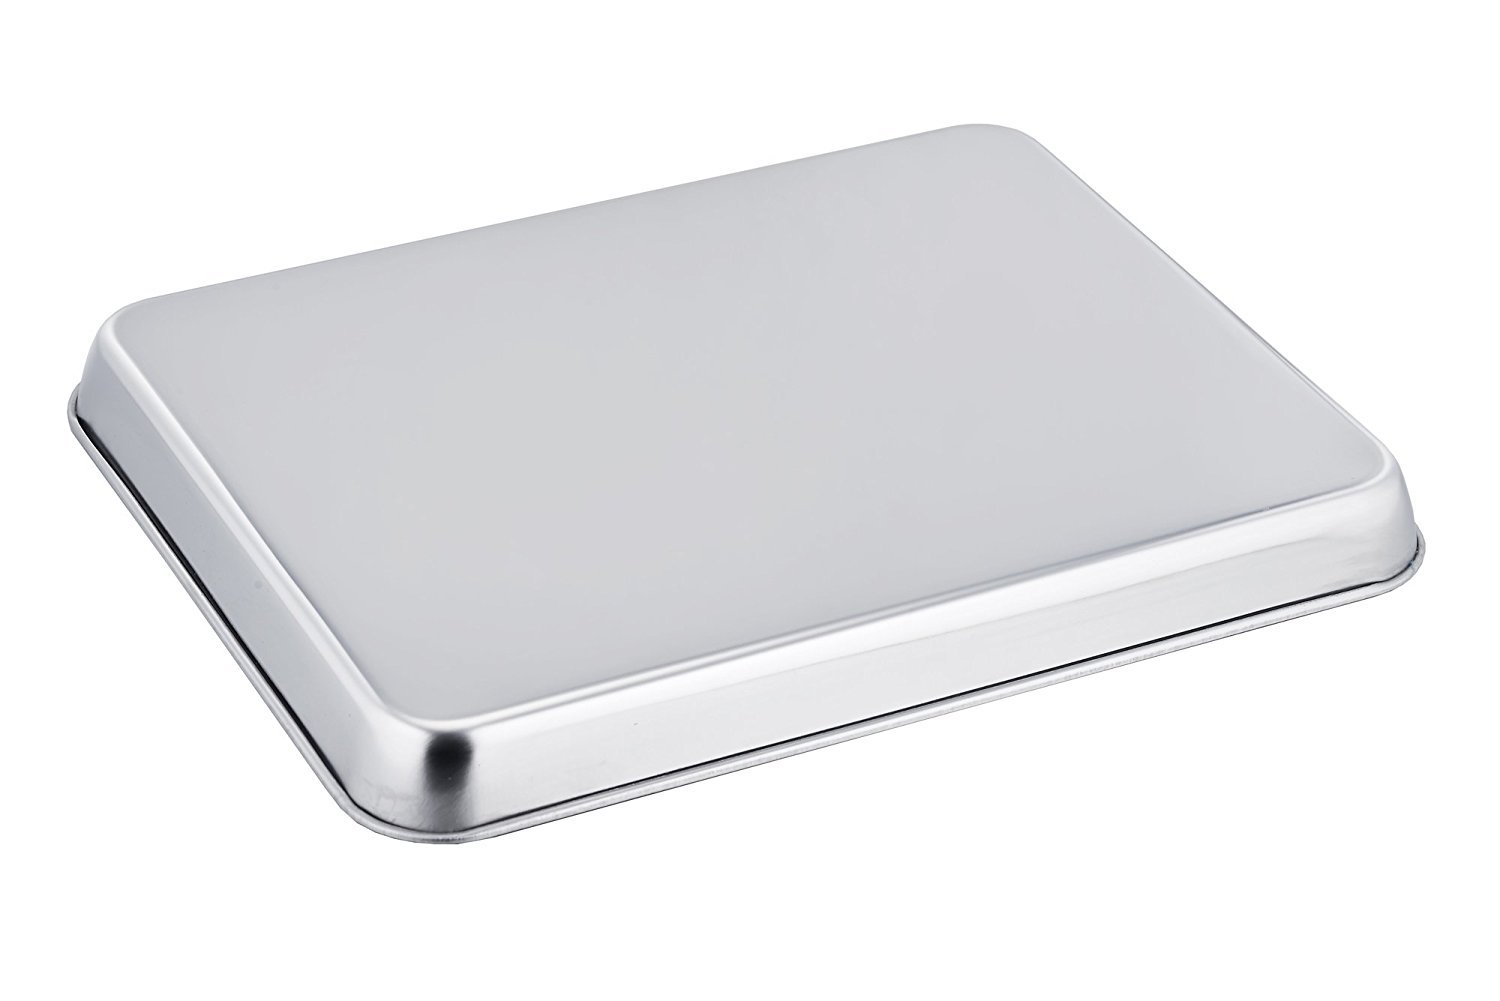 2pack Baking Sheet Cookie Sheets,Pure Stainless Steel Commercial Baking Sheets,Baking Pan Tray&Toaster Oven Sheets,Non Toxic & Healthy & Dishwasher Safe